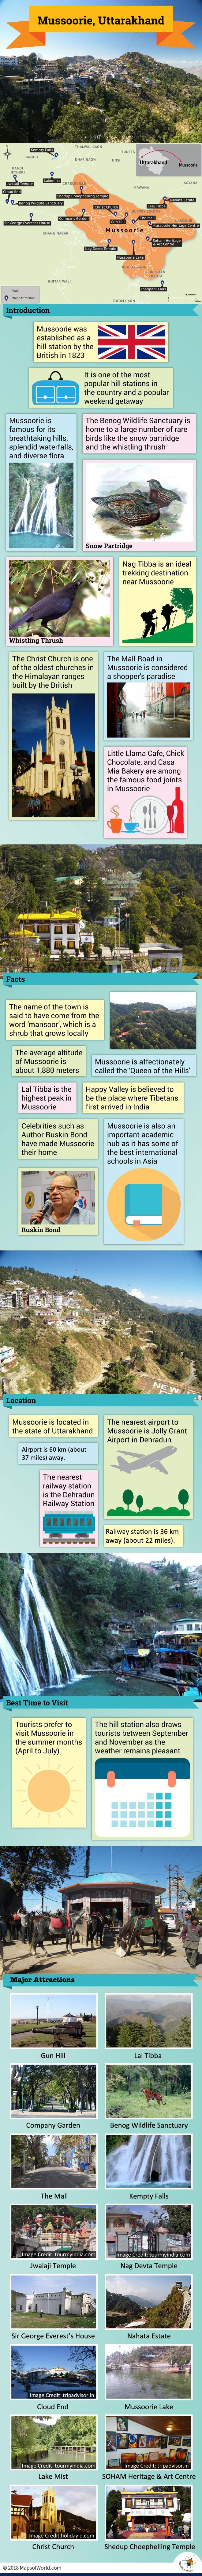 Infographic Depicting Mussoorie Tourist Attractions